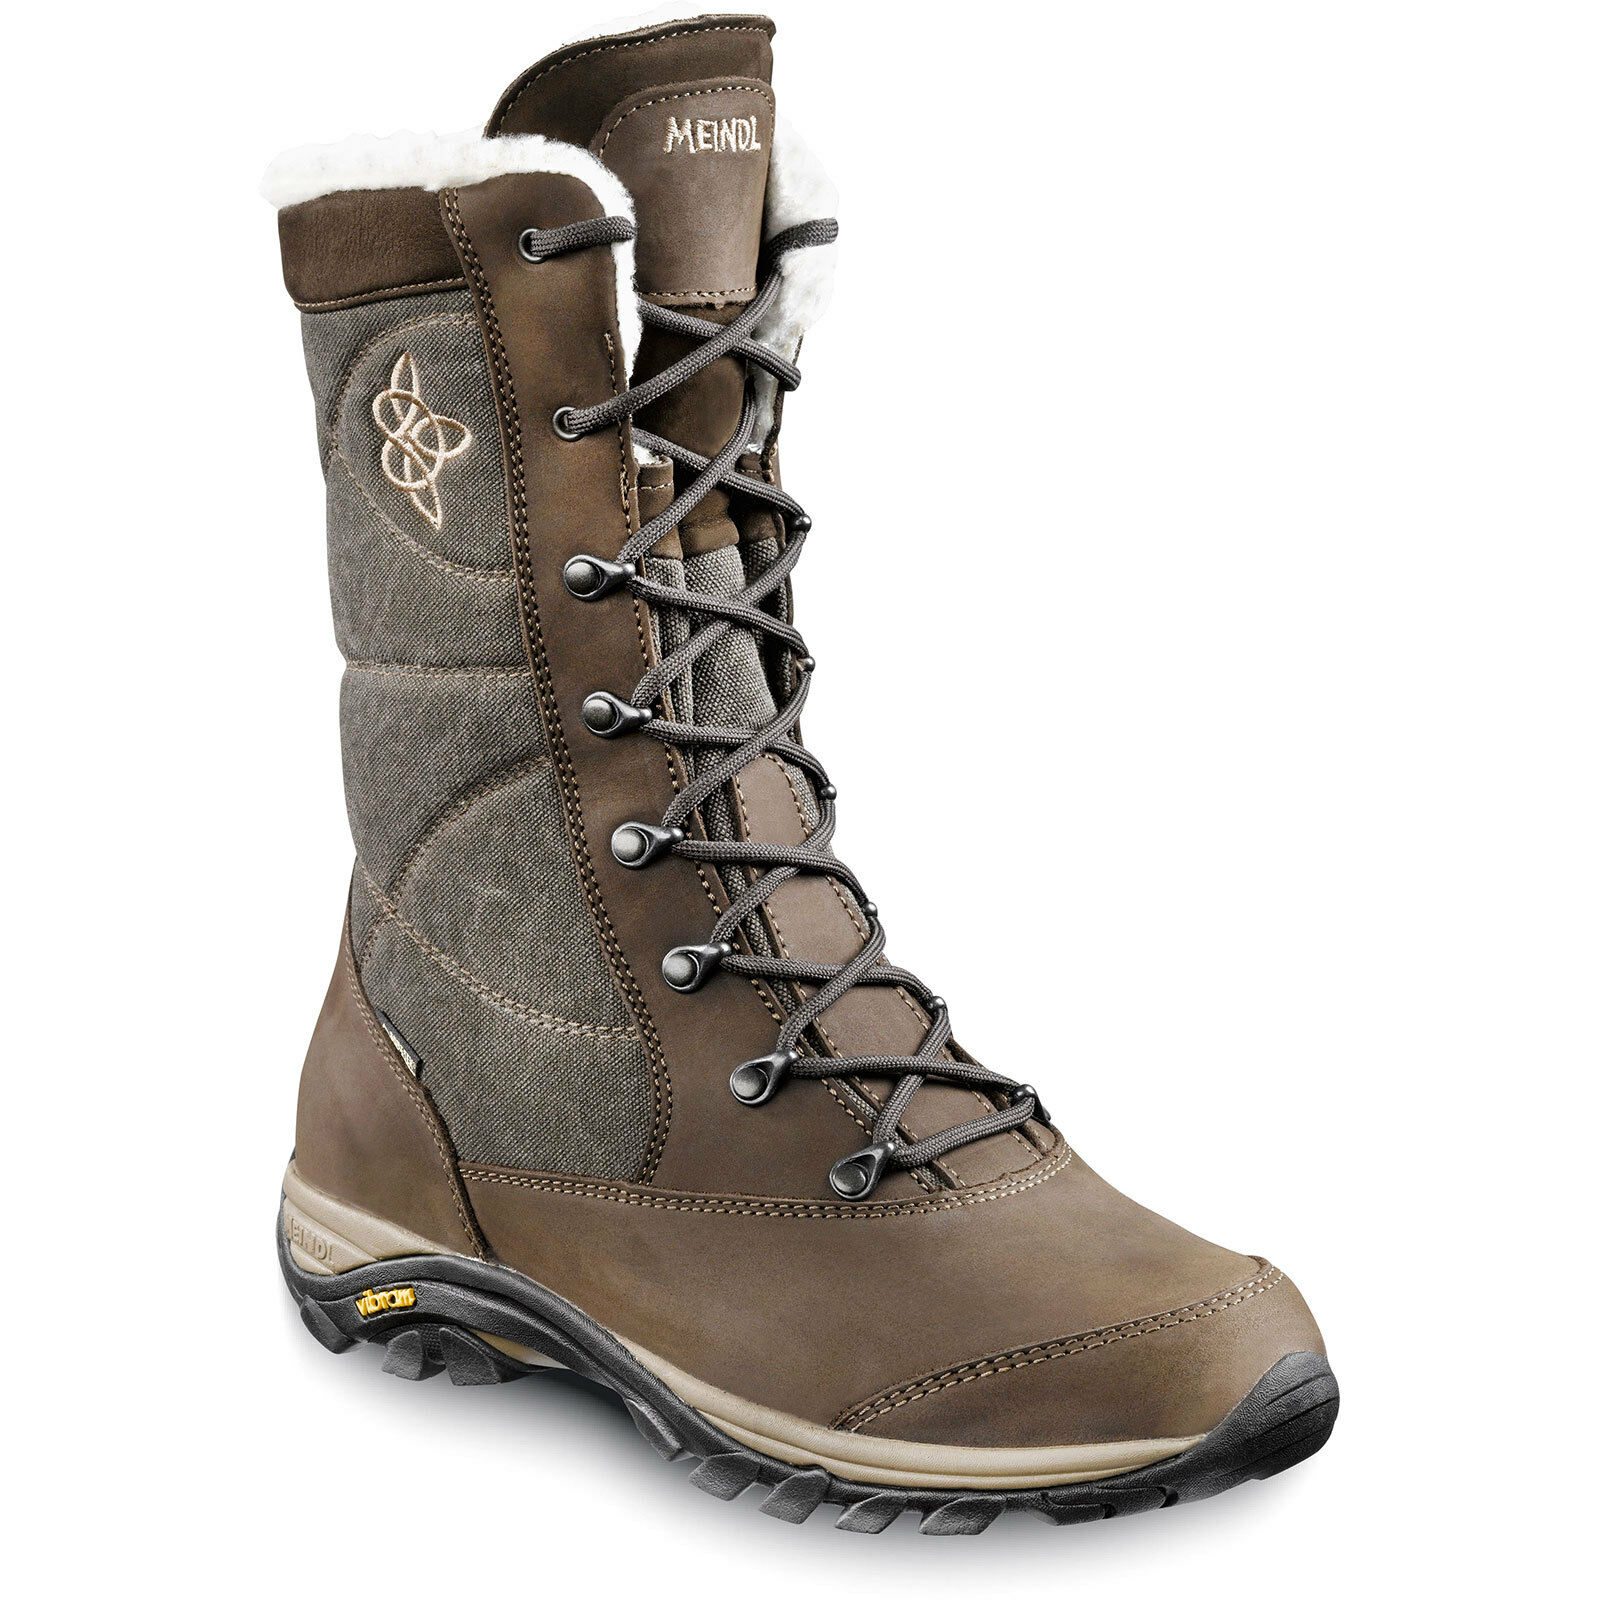 Meindl Fontanella GTX Women's Boots Winter Boots Lace up Boots